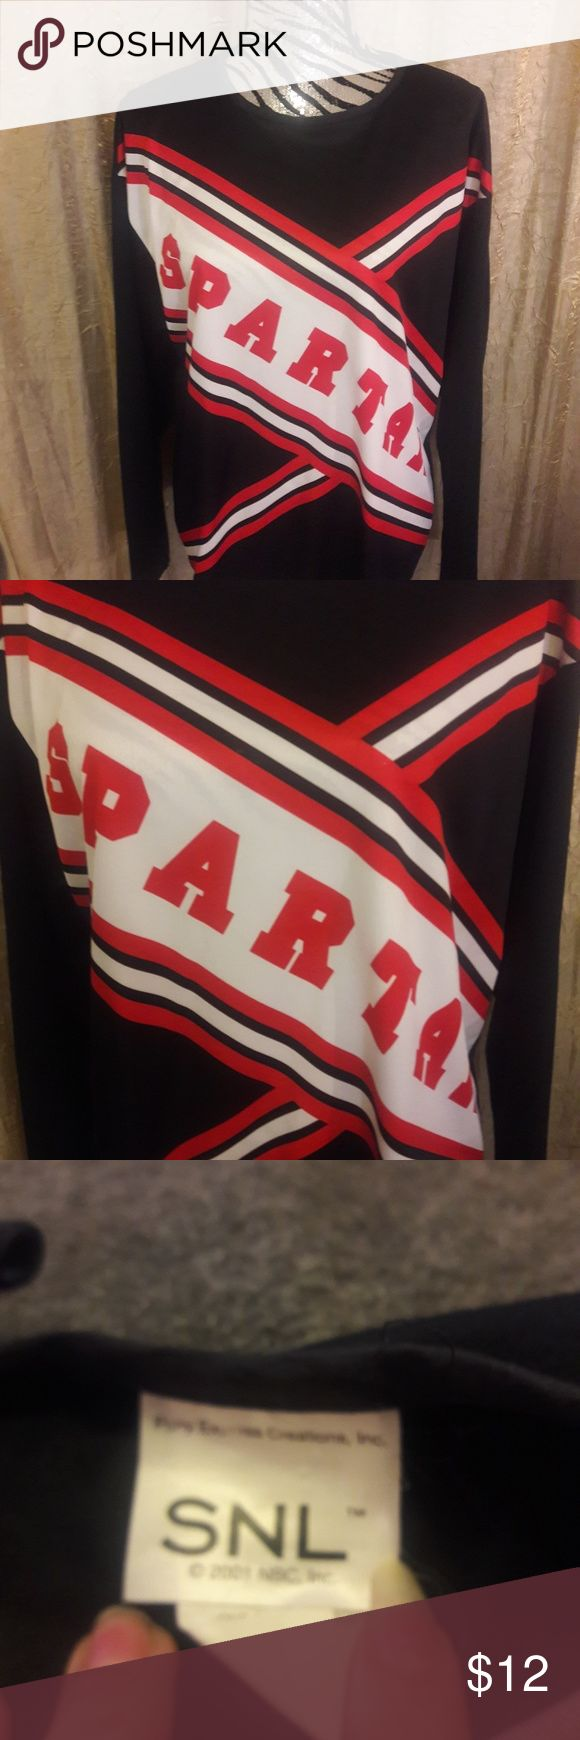 Snl Spartans cheerleader top (costume) Size one size black, red and white Snl Spartans cheerleader costume top. 100% polyester. Tops